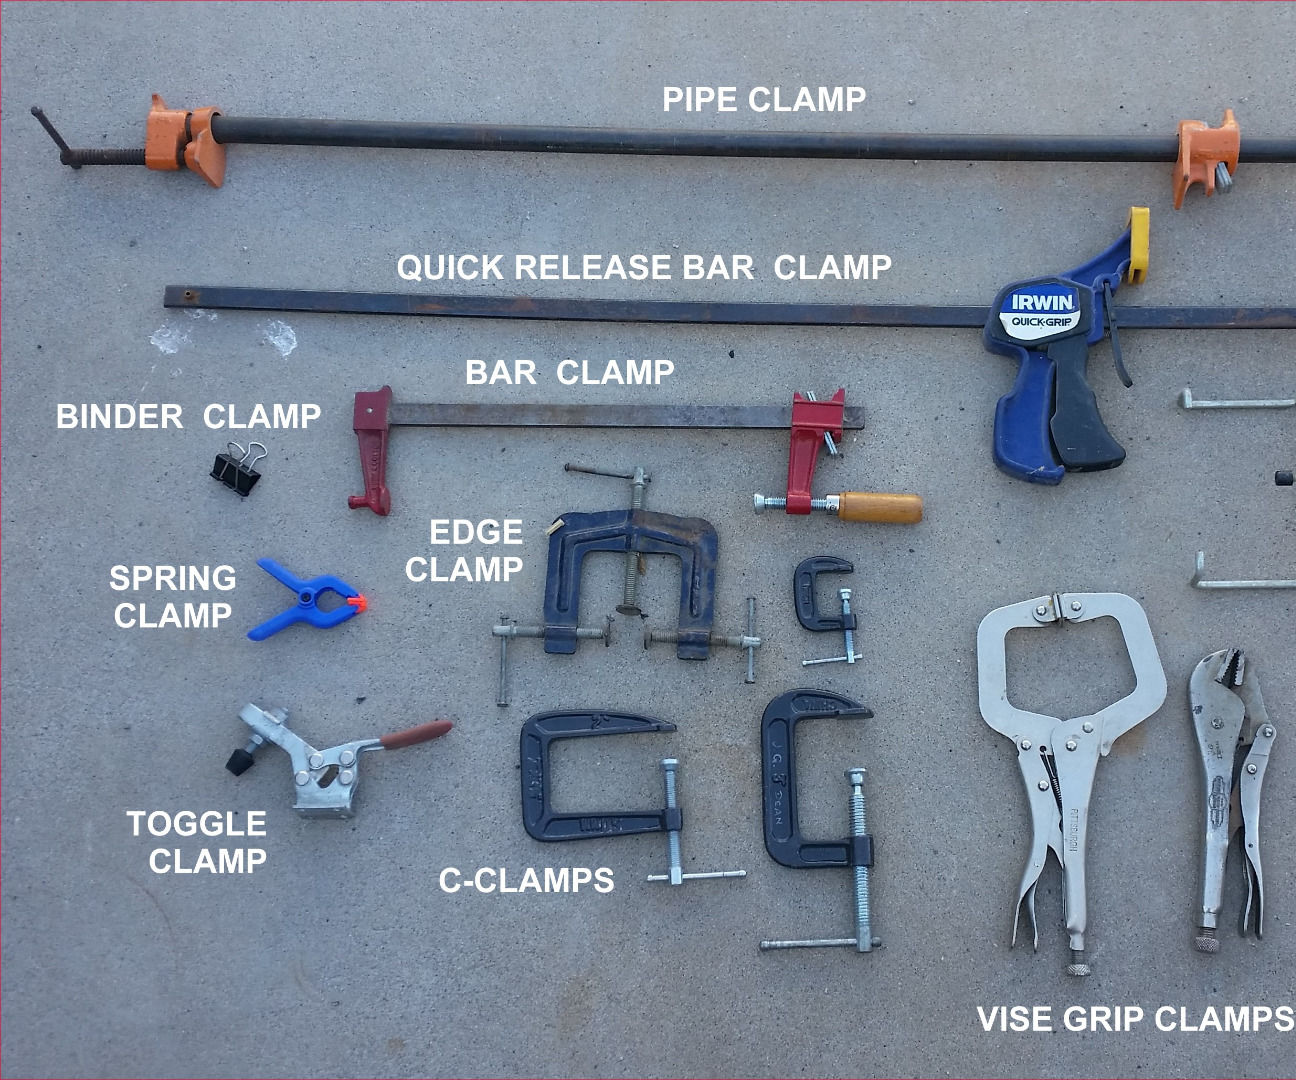 Clamps, Clamps, and More Clamps